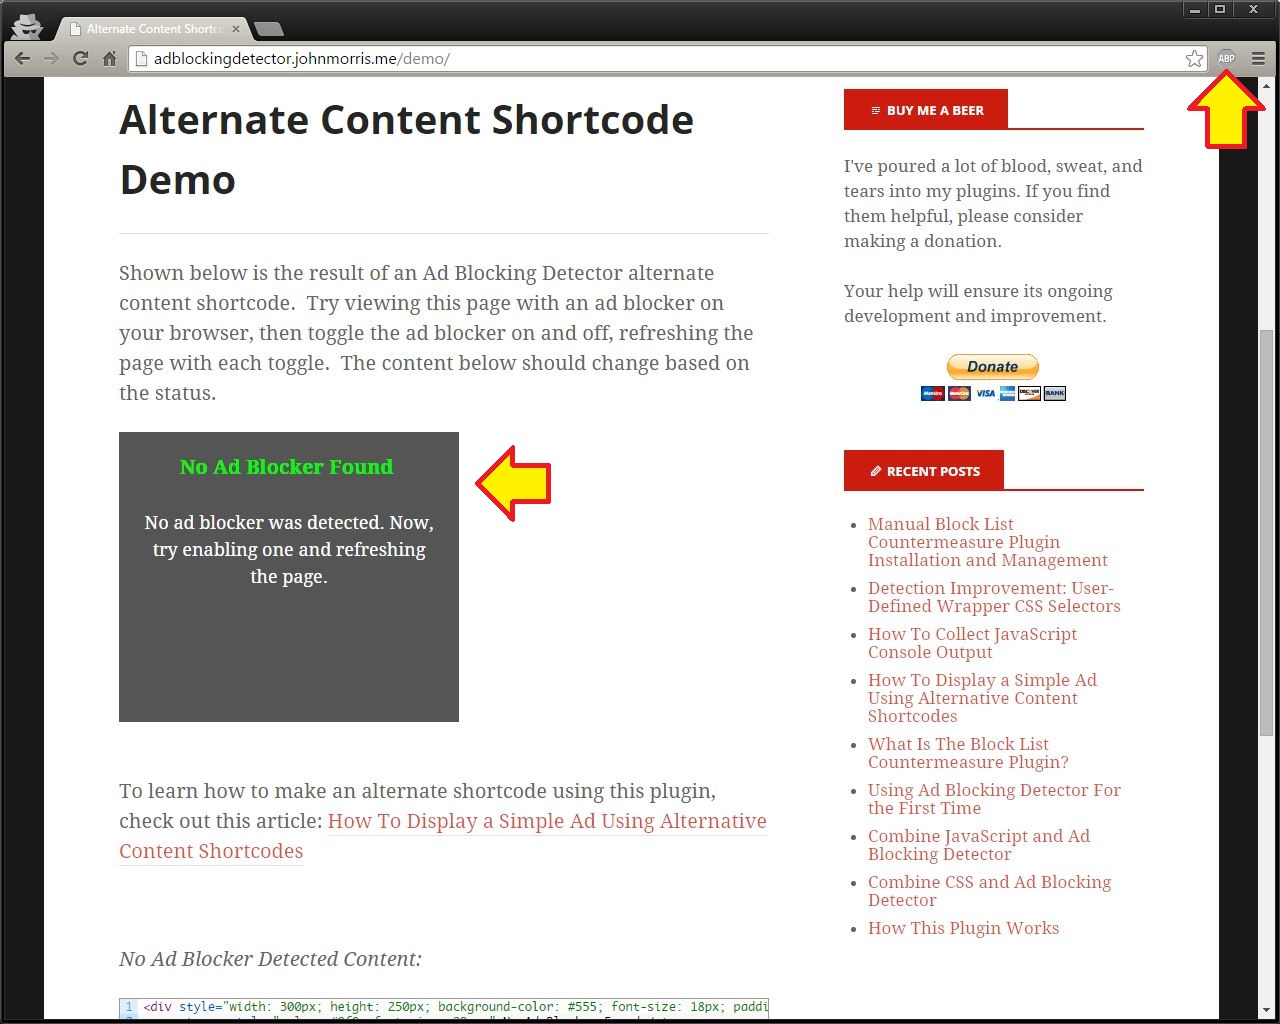 ad-blocking-detector screenshot 7